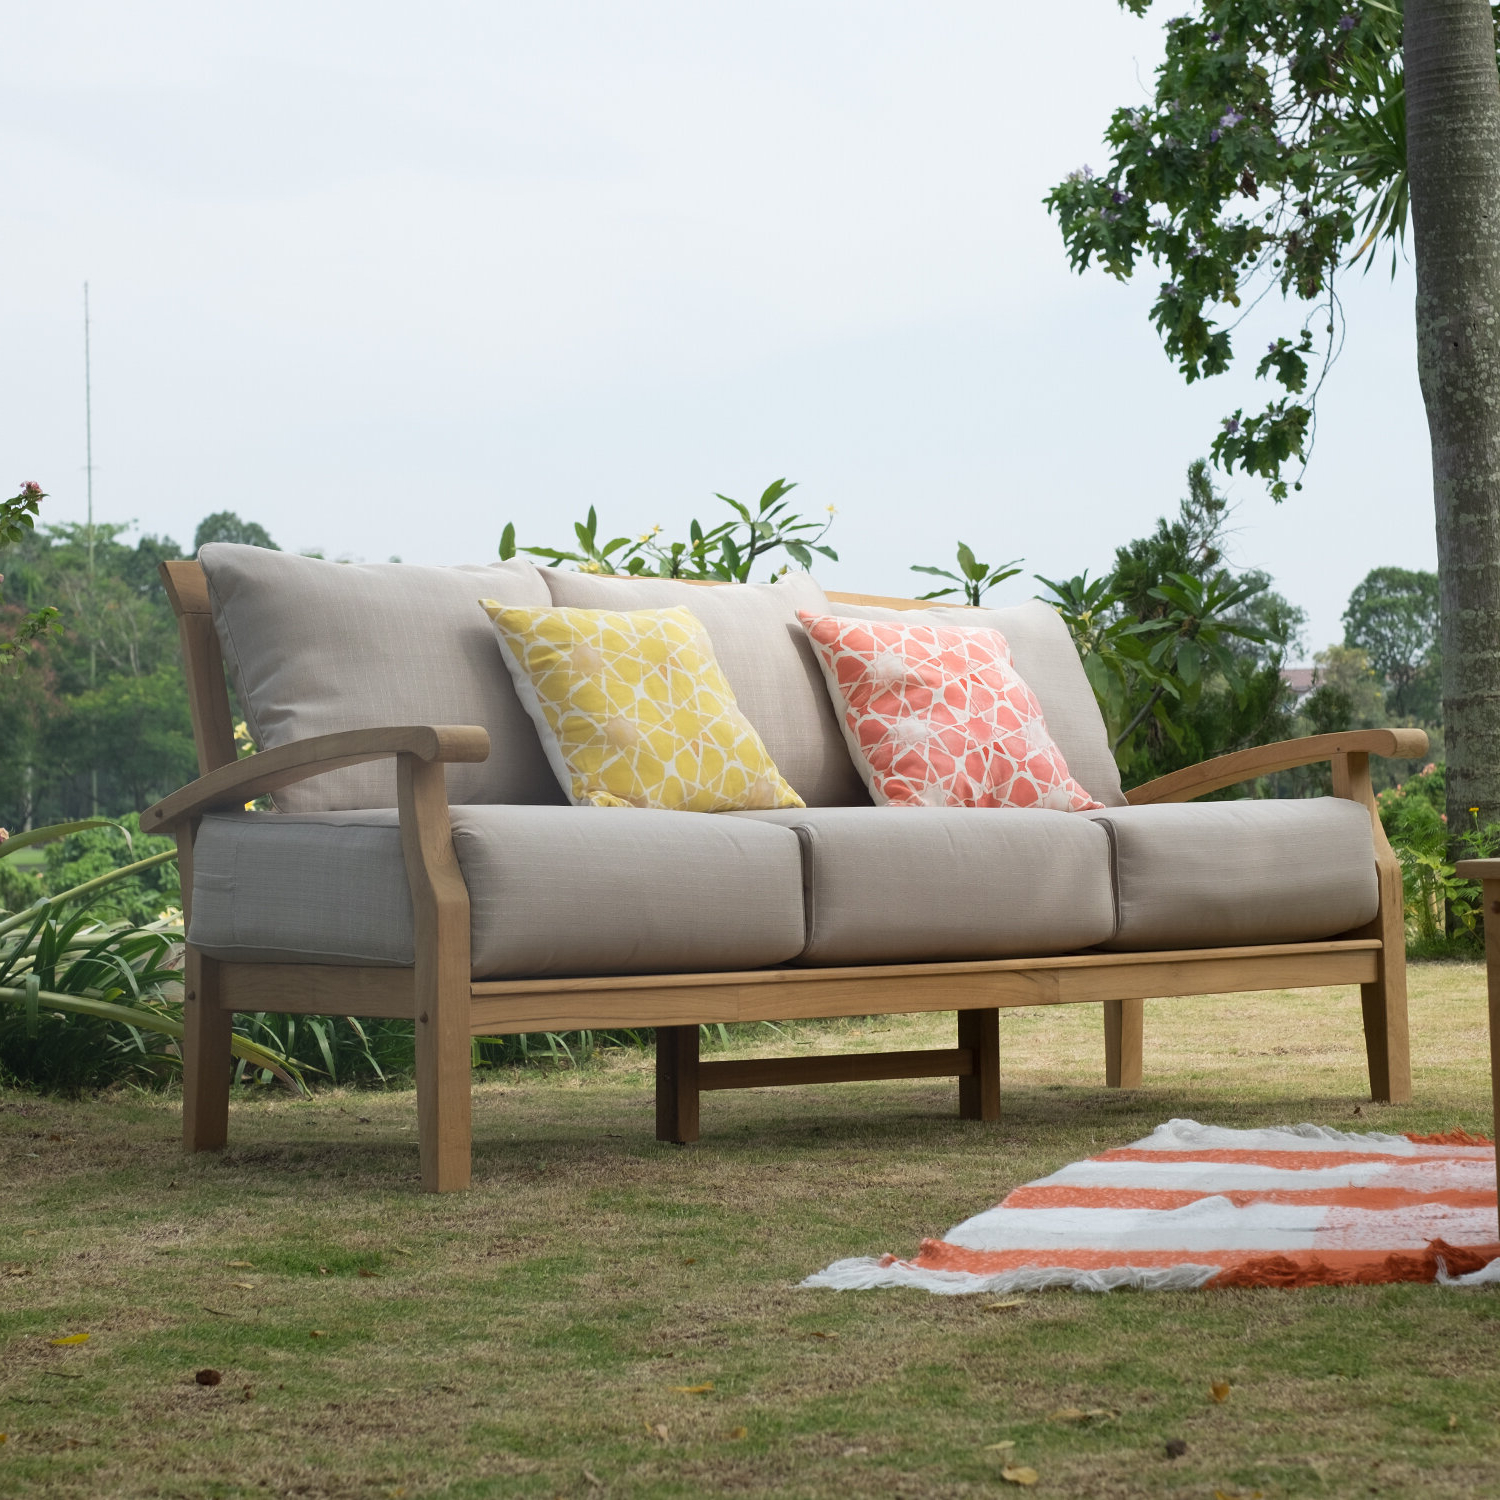 Lakeland Teak Patio Sofas With Cushions Intended For Well Liked Summerton Teak Patio Sofa With Cushions (View 11 of 20)